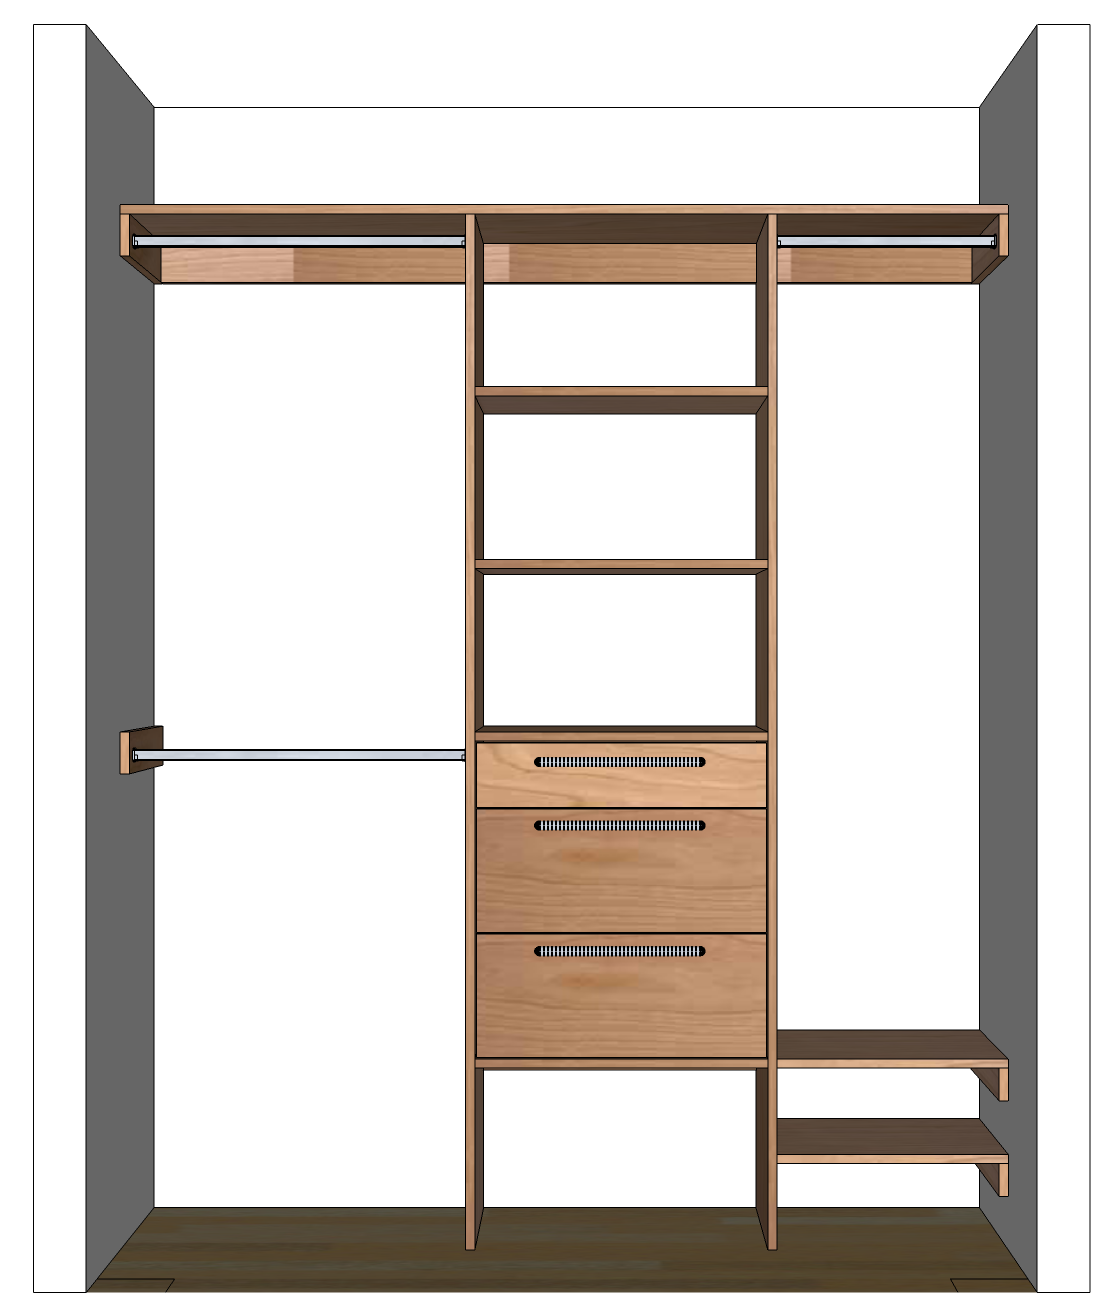 Diy closet organizer plans for 5 39 to 8 39 closet Wardrobe cabinet design woodworking plans